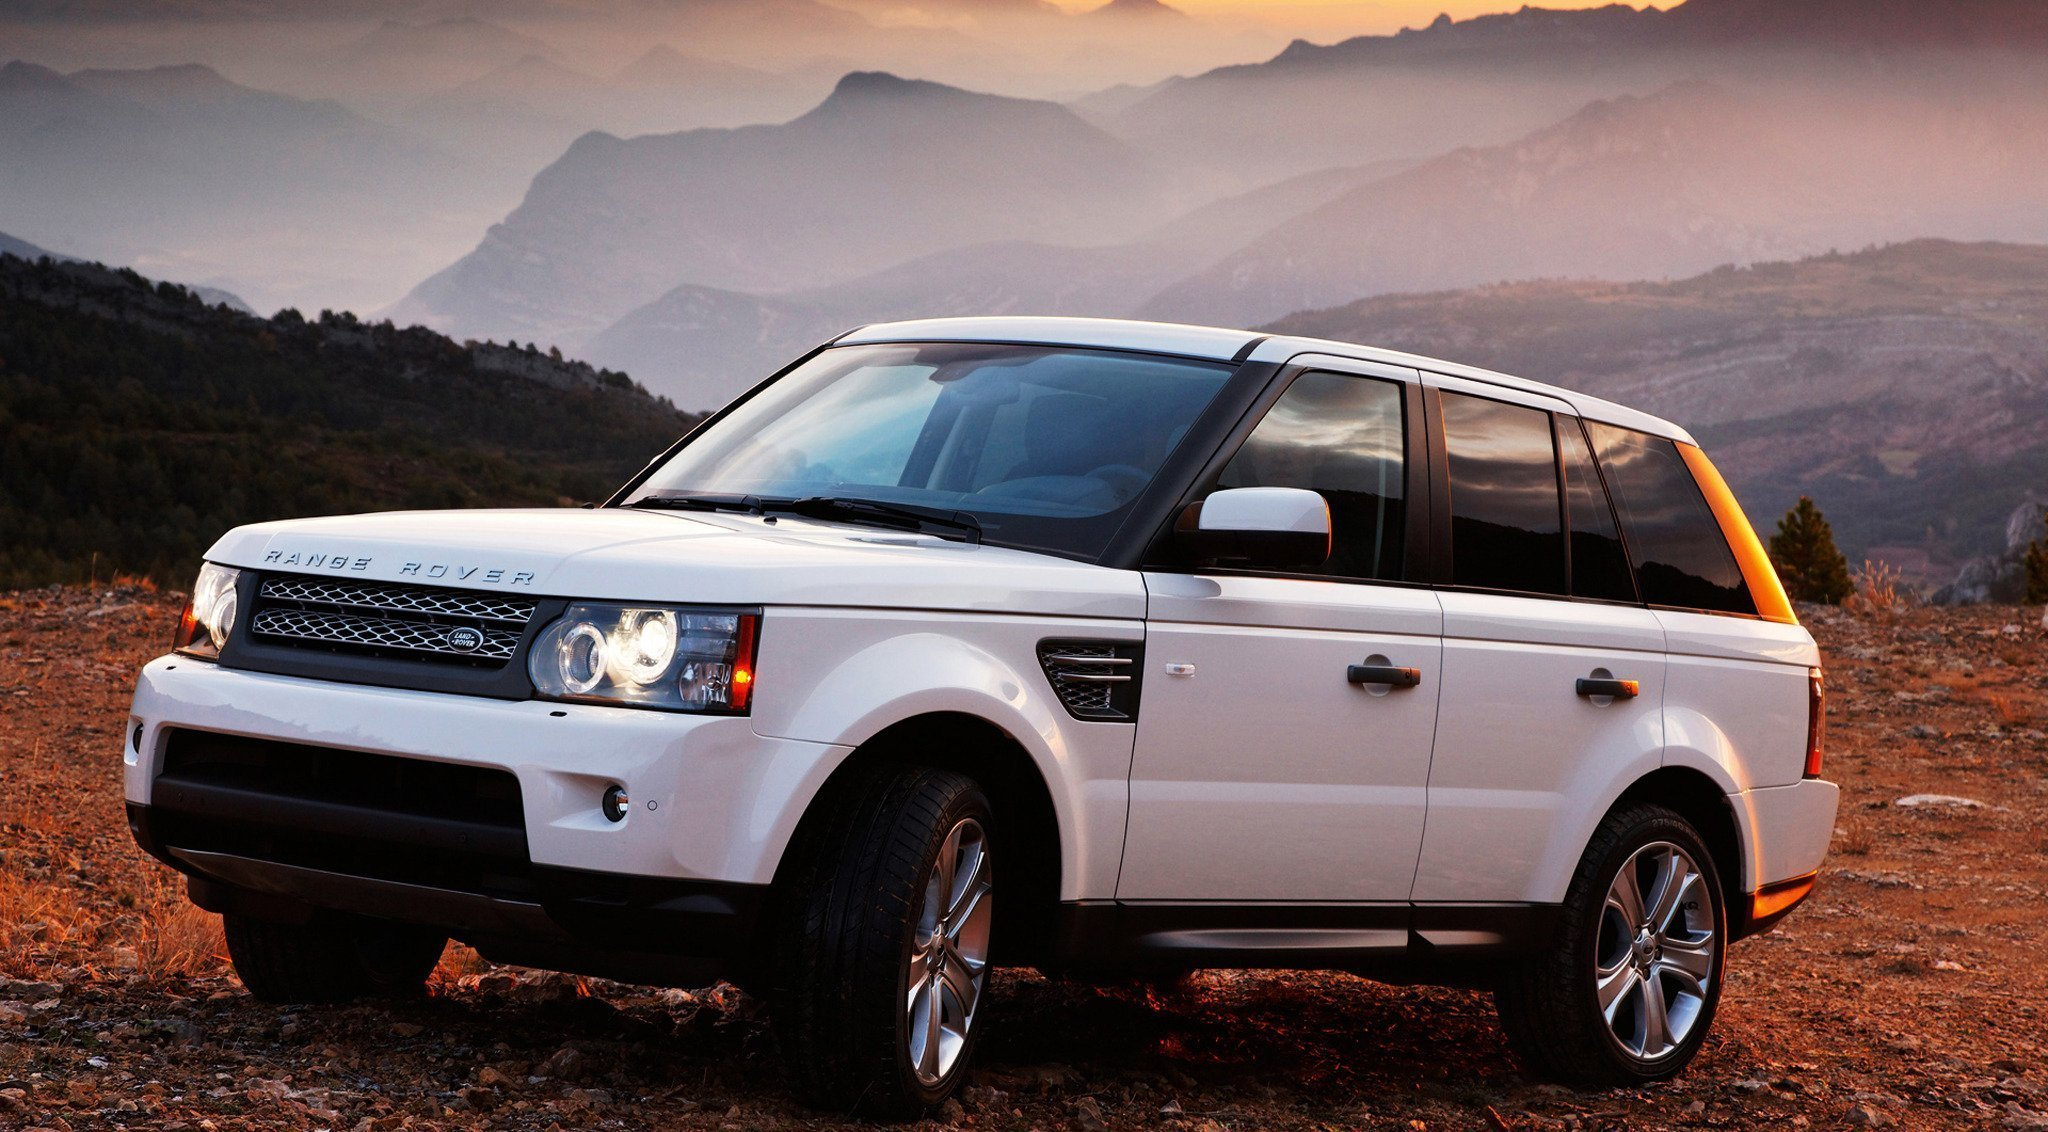 Latest Range Rover White Car Sunset Mountain Cars Machinery Hd Free Download